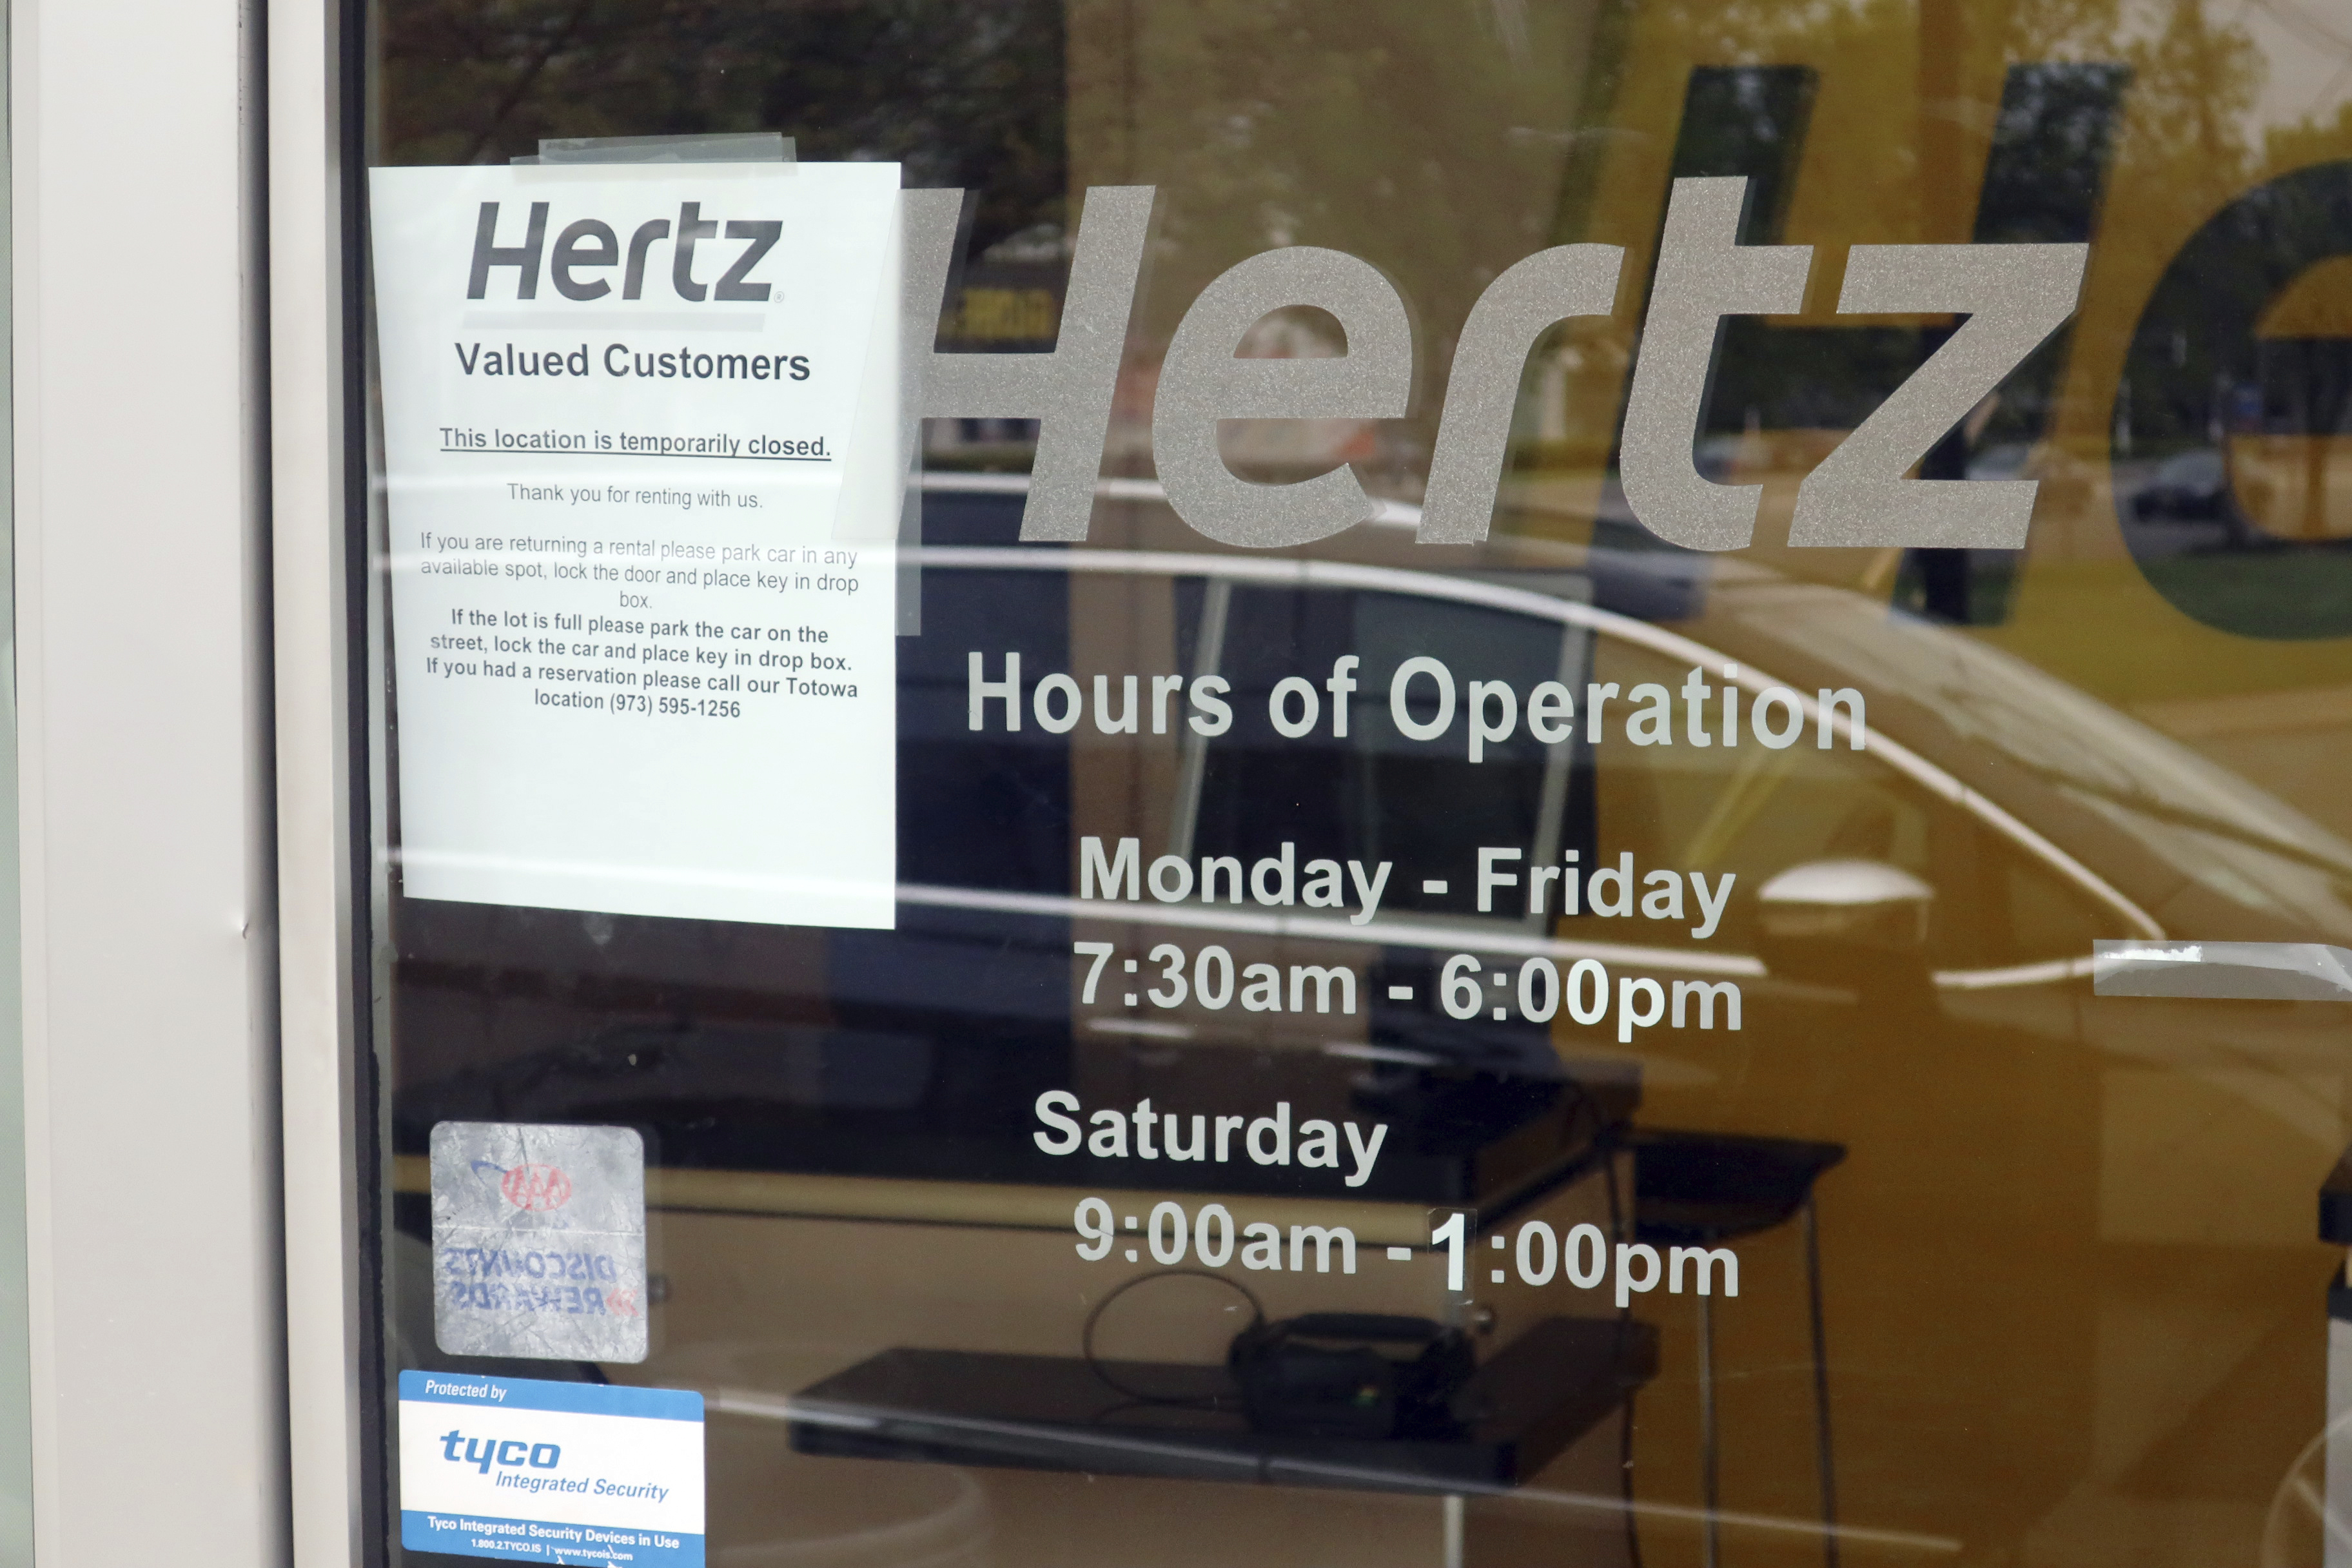 A Hertz Car Rental location in New Jersey, closed during the coronavirus pandemic.